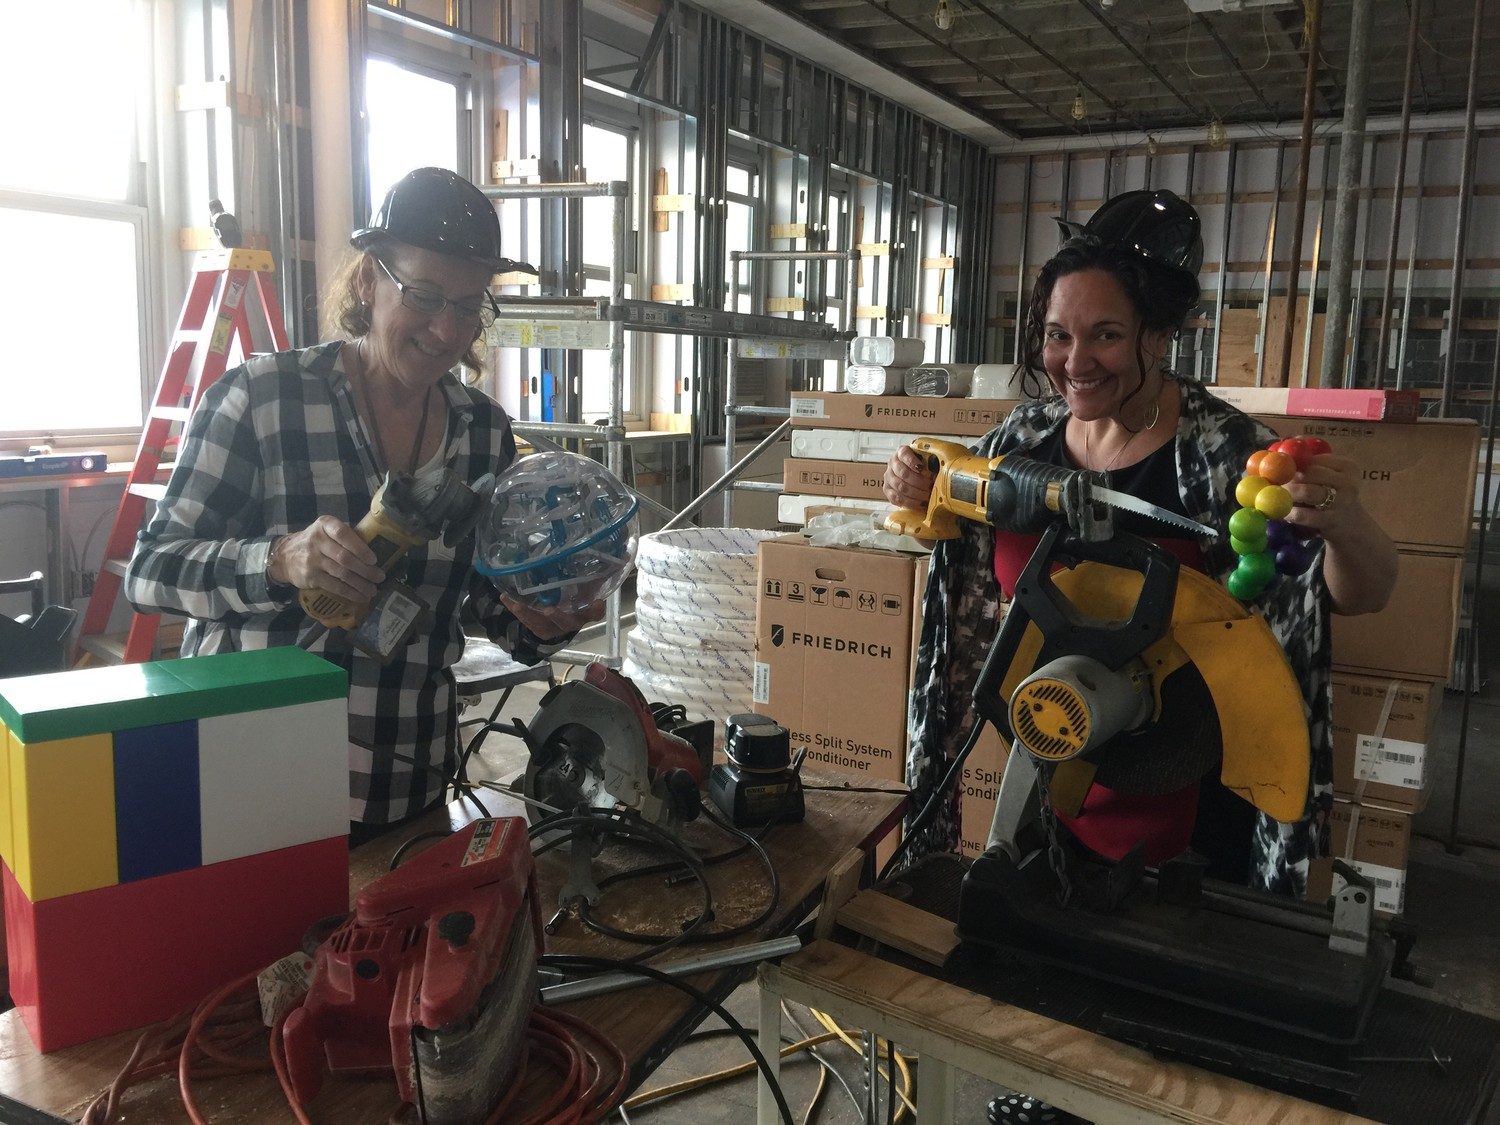 Oceanside School No. 6 principal Julie McGahan and her administrative assistant Beth Sporting in the unfinished learning lab as they pretended to build toys with power tools.